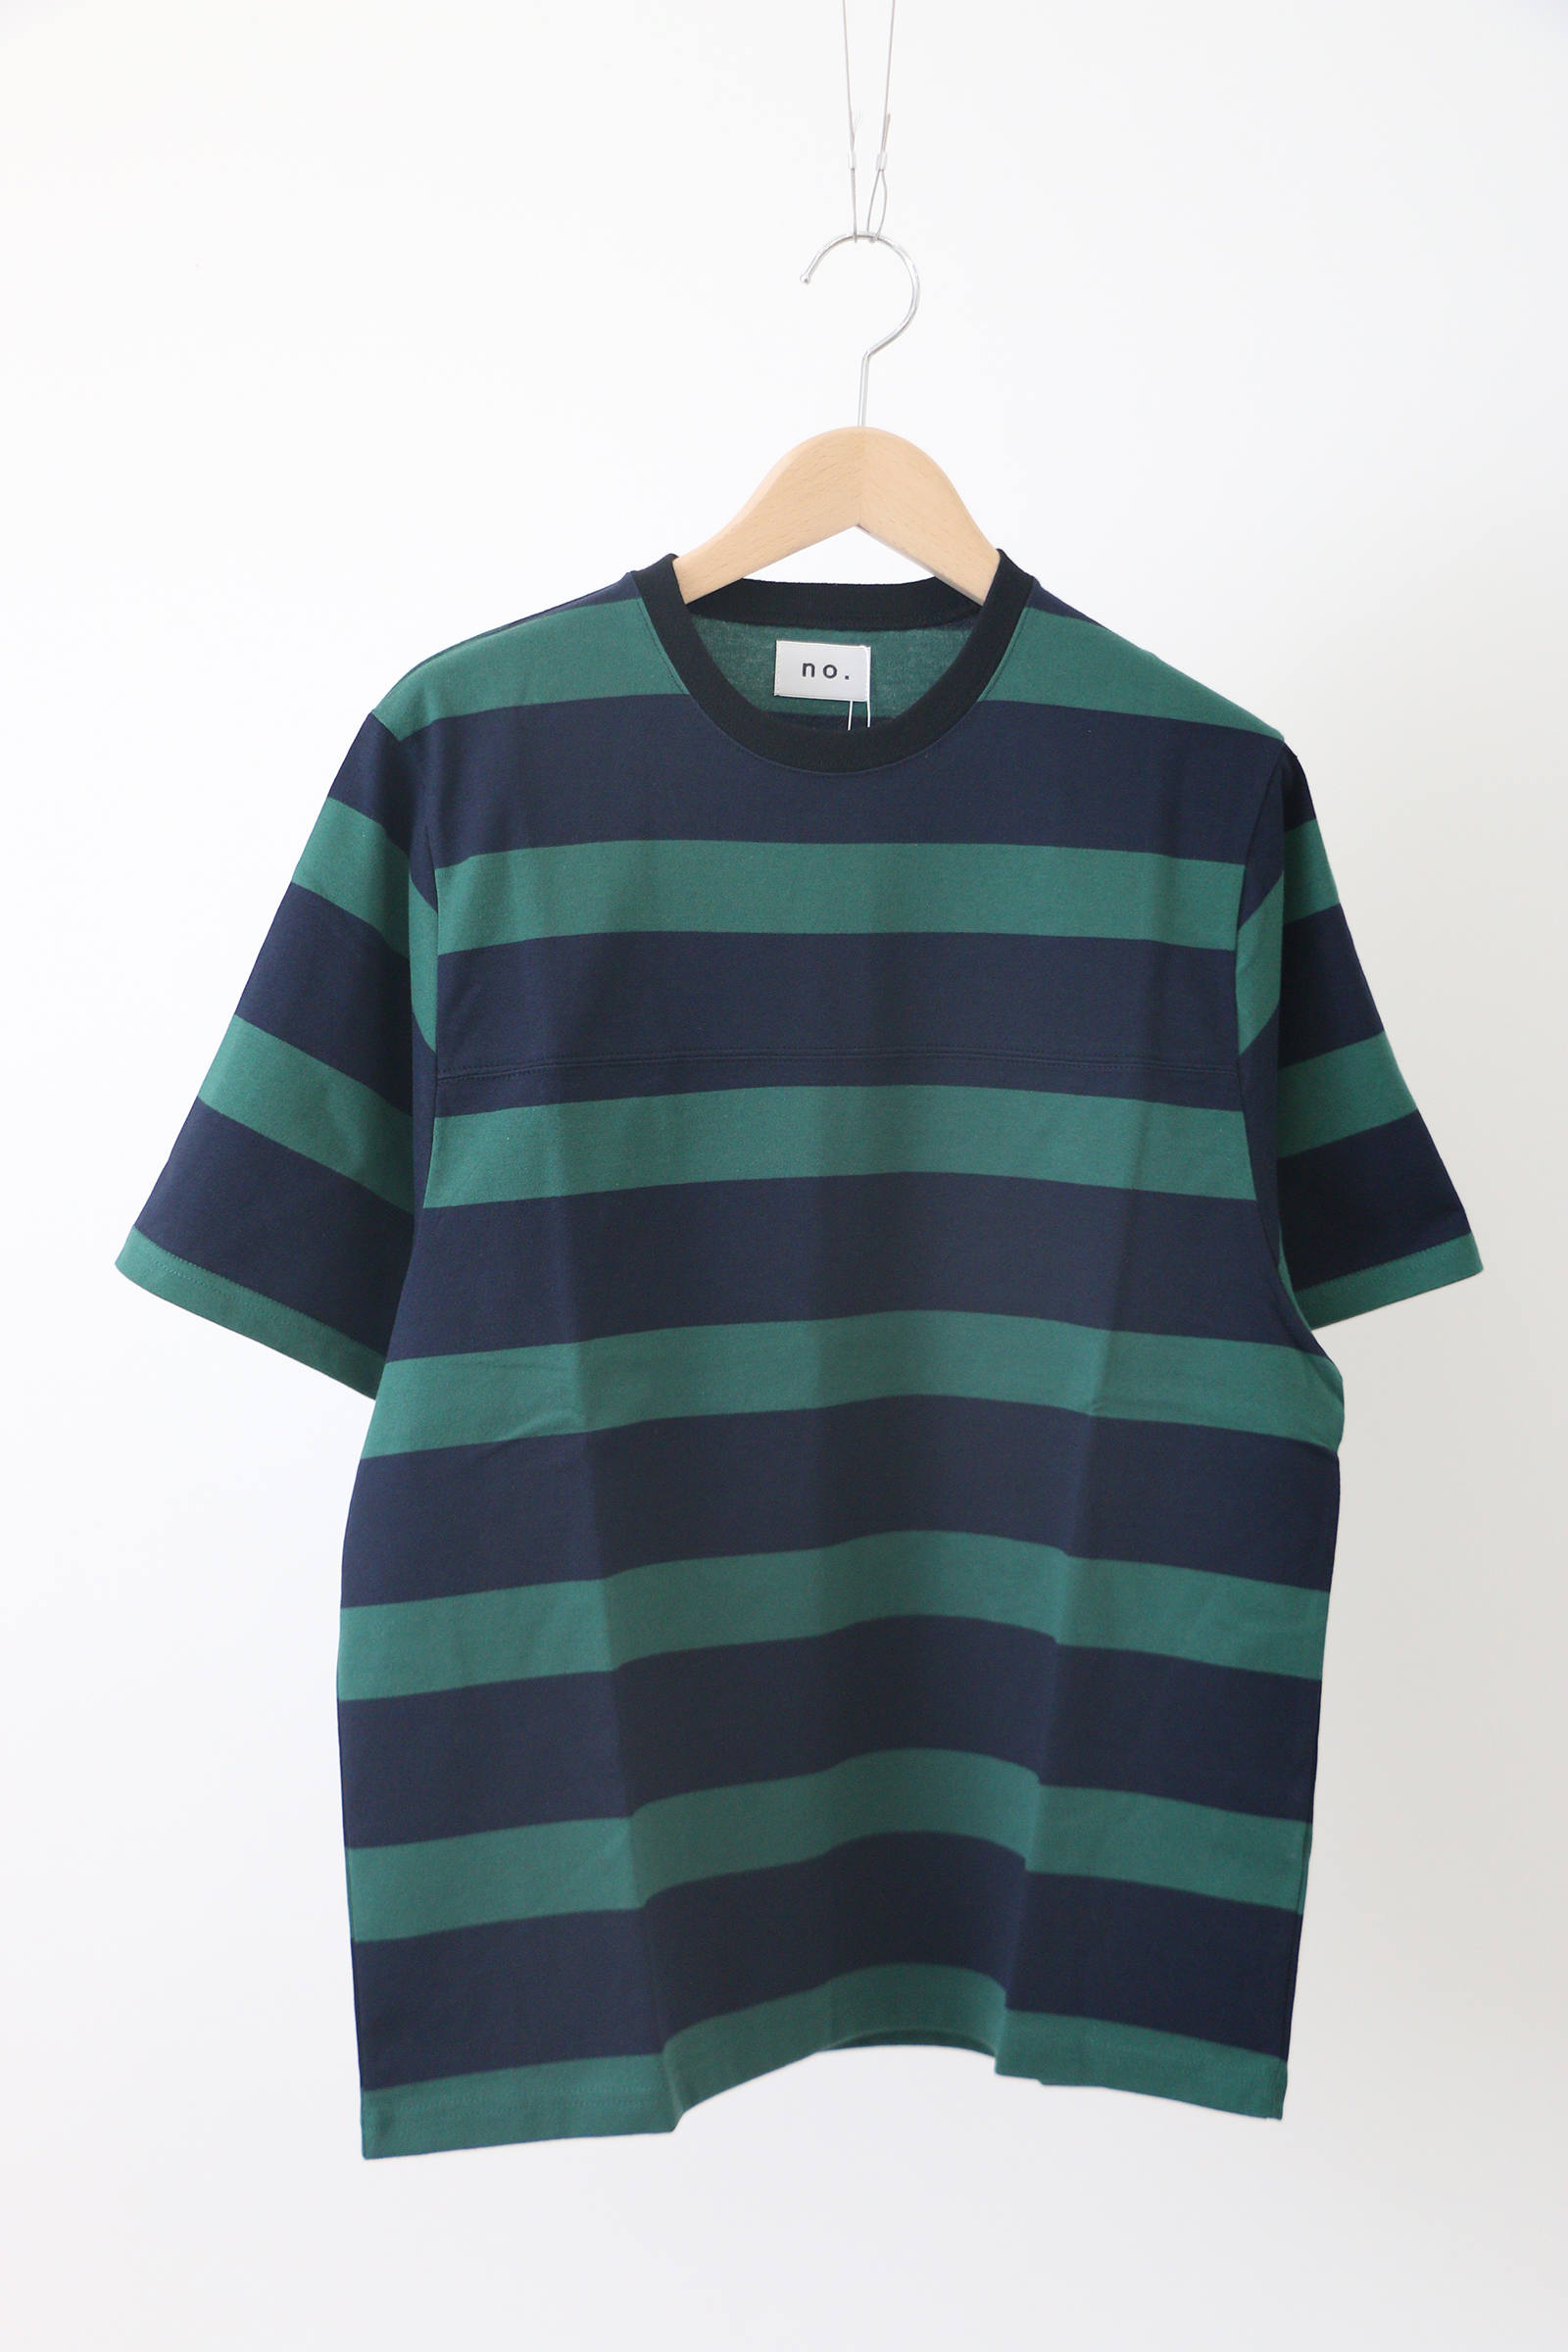 「即日発送可能!!」no. BORDER GAME TEE NAVY x GREEN